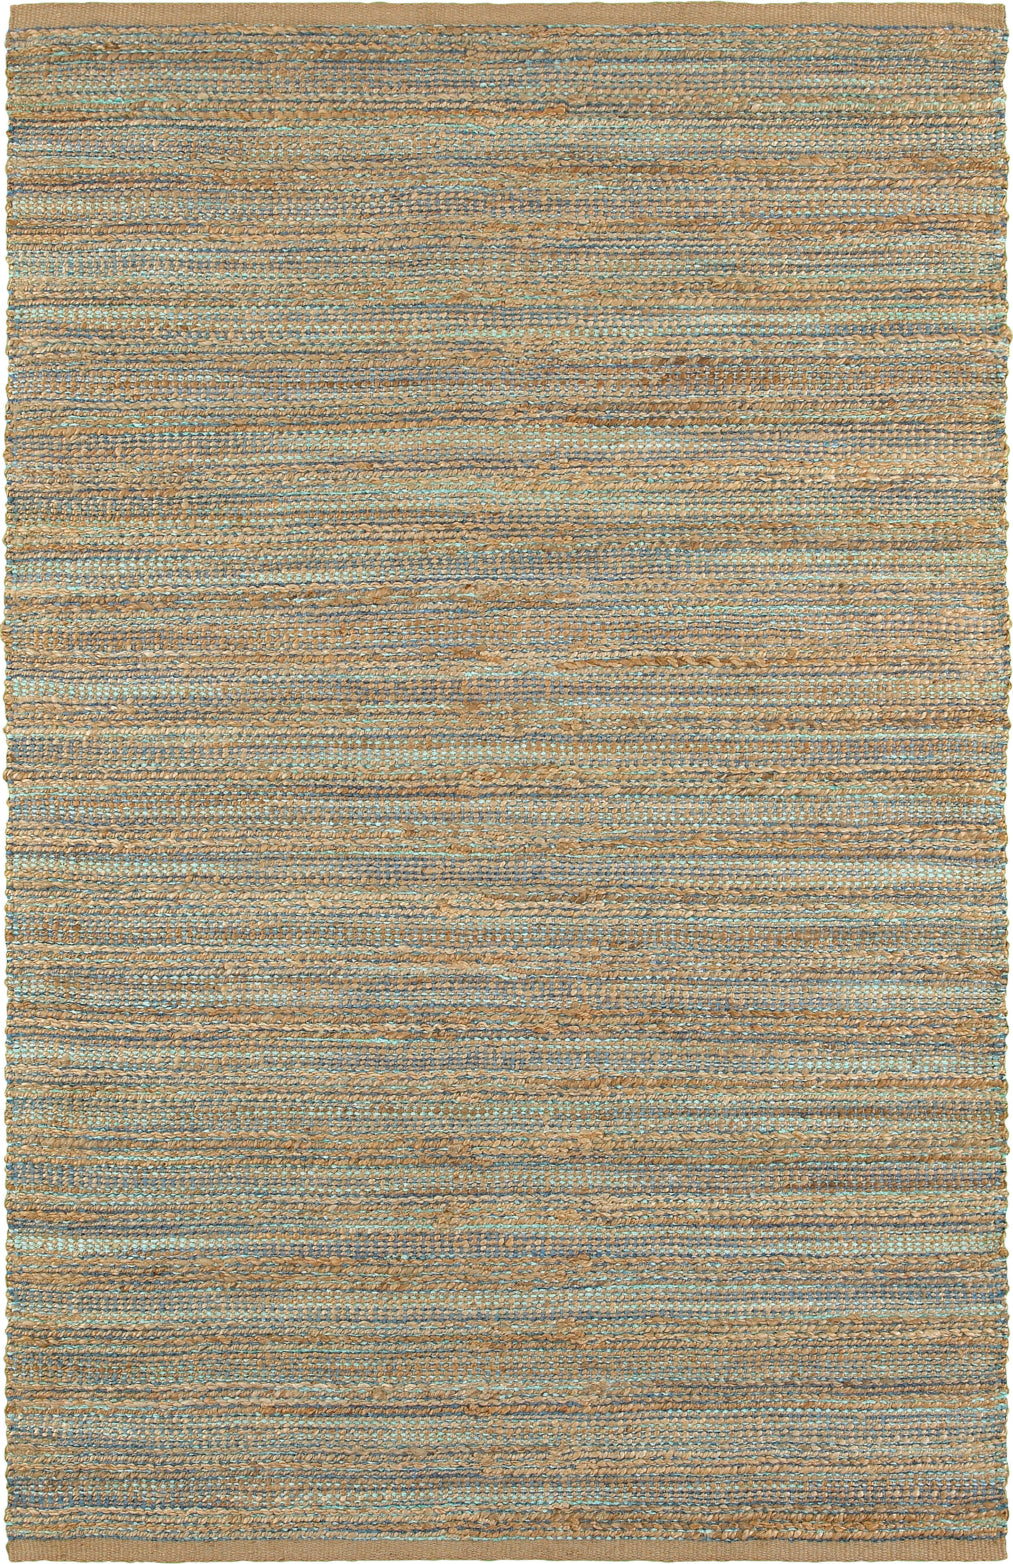 LR Resources Natural Fiber 3314 Teal Area Rug main image